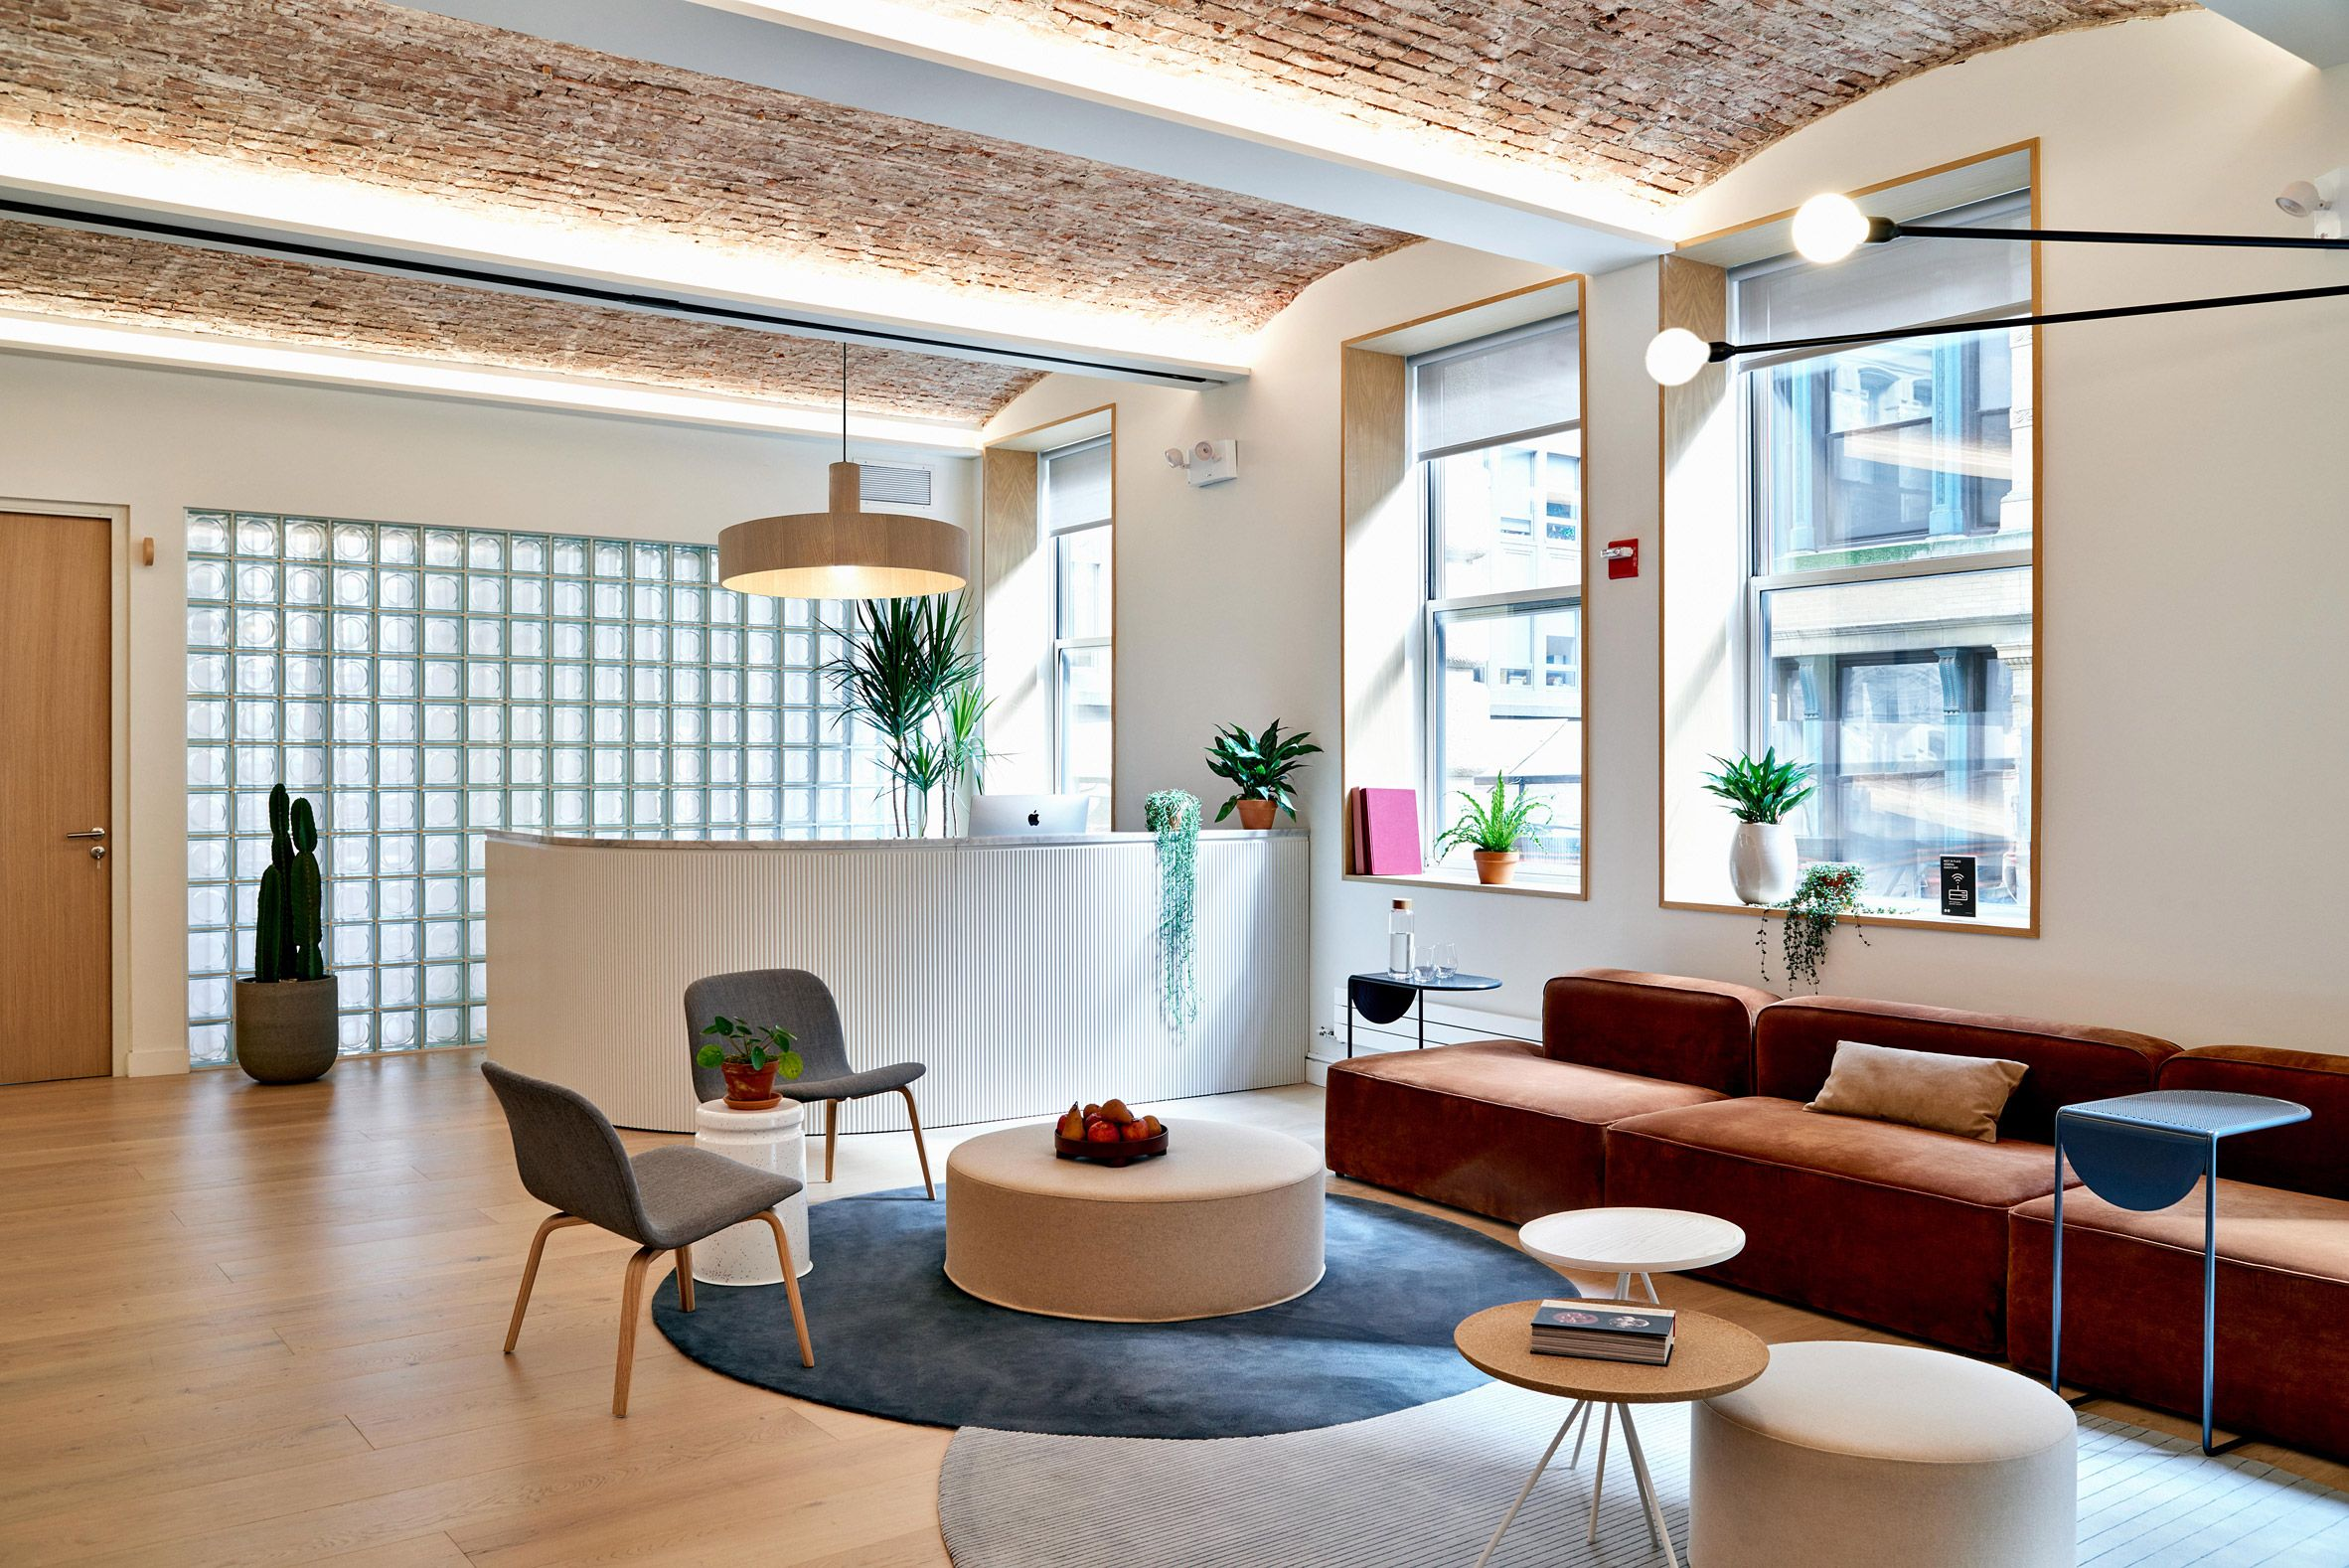 Float Studio designs rentable offices for Meet in Place in